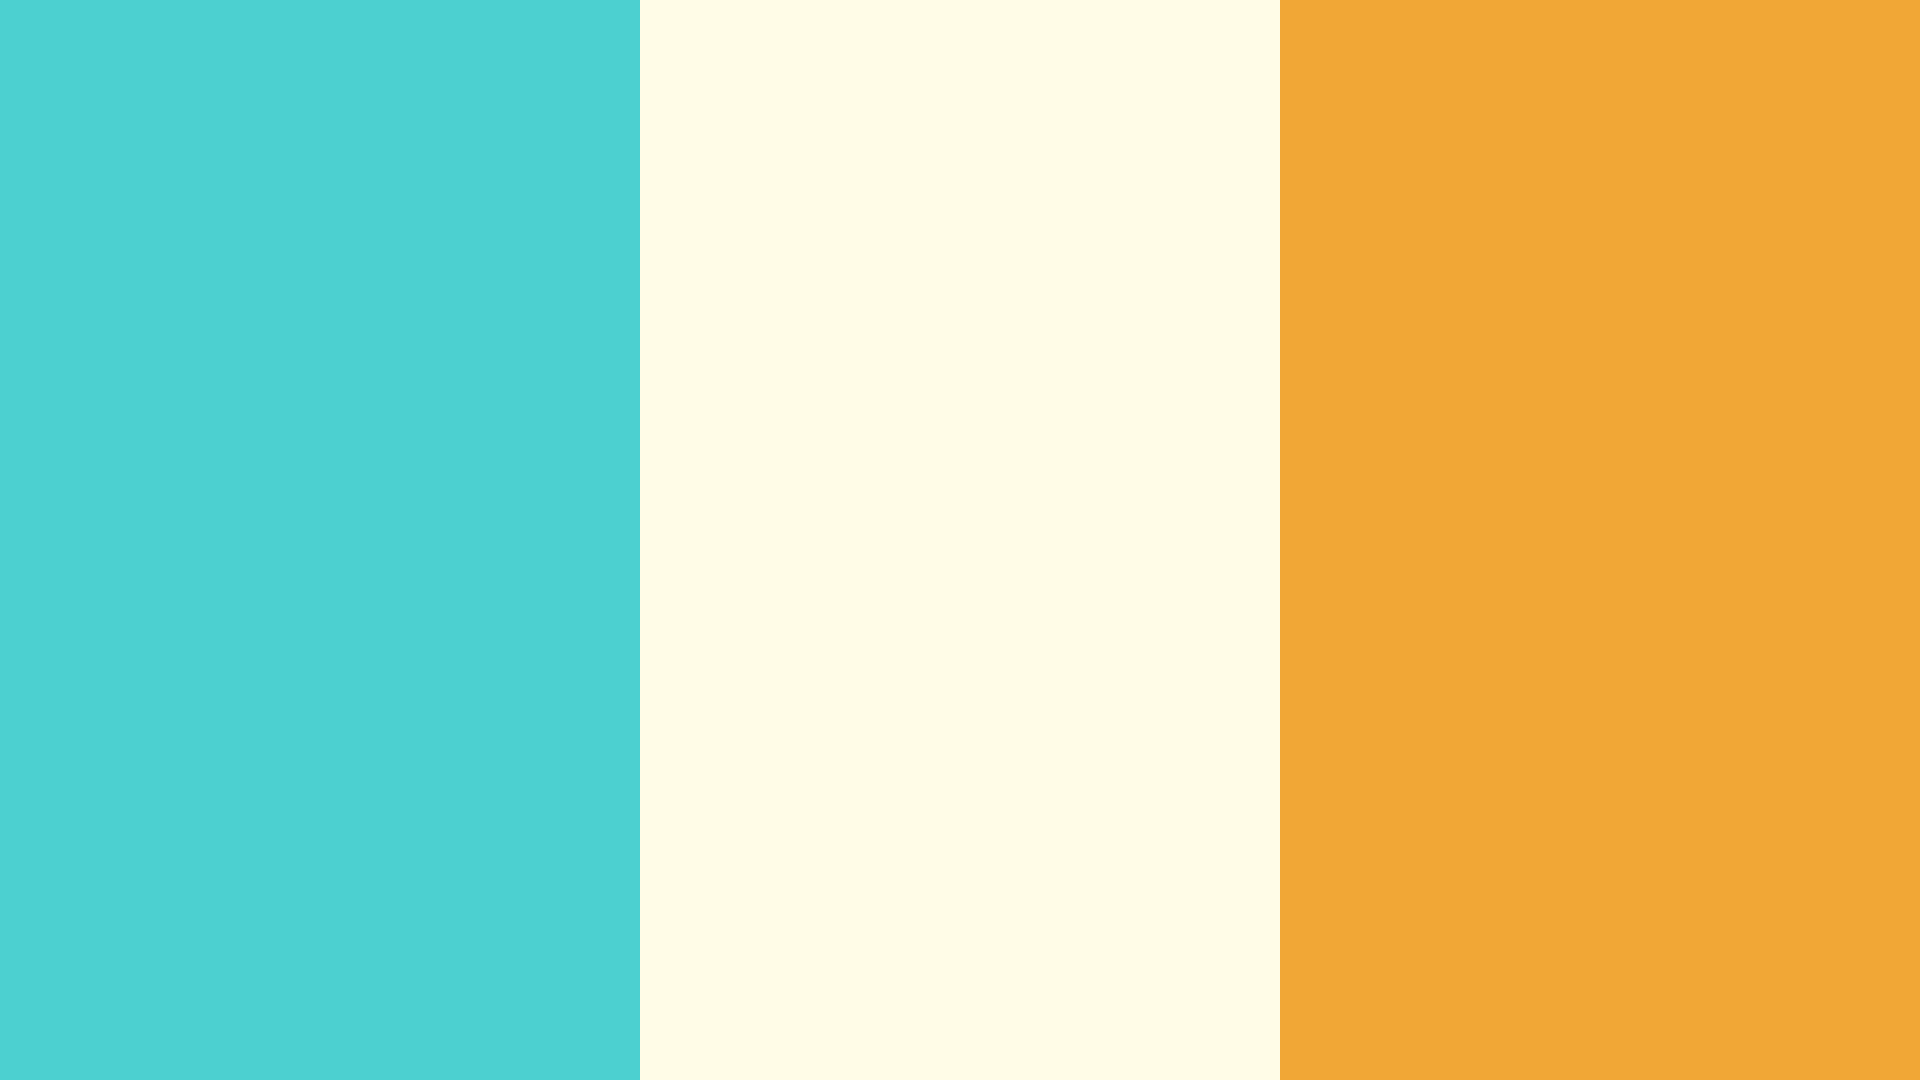 Outstanding Turquoise & Orange Color Palette